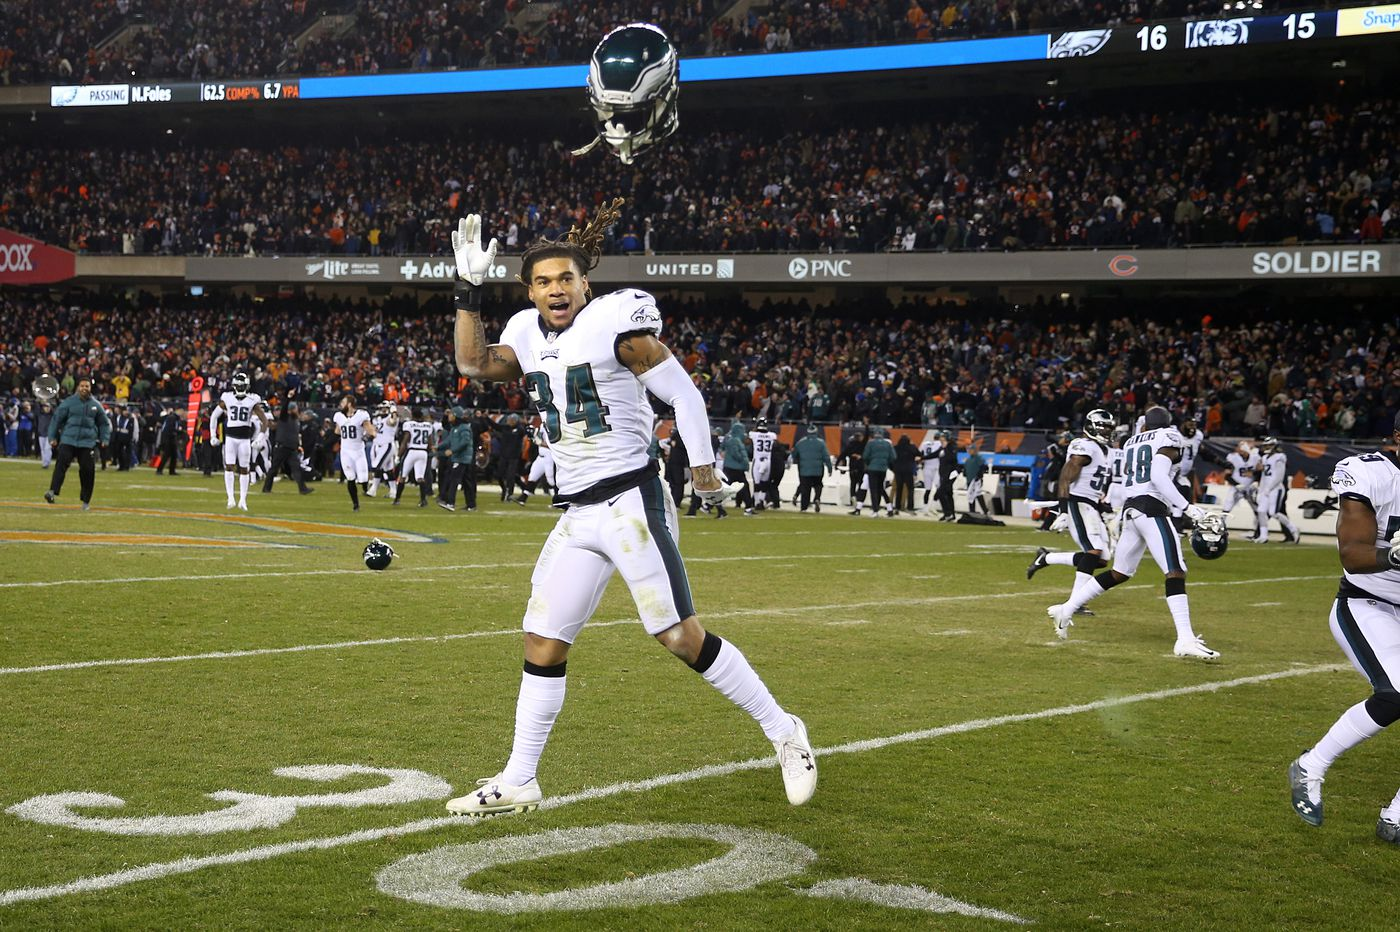 Cornerback Cre'Von LeBlanc feels he was chosen by fate, and by the Eagles, who desperately needed him